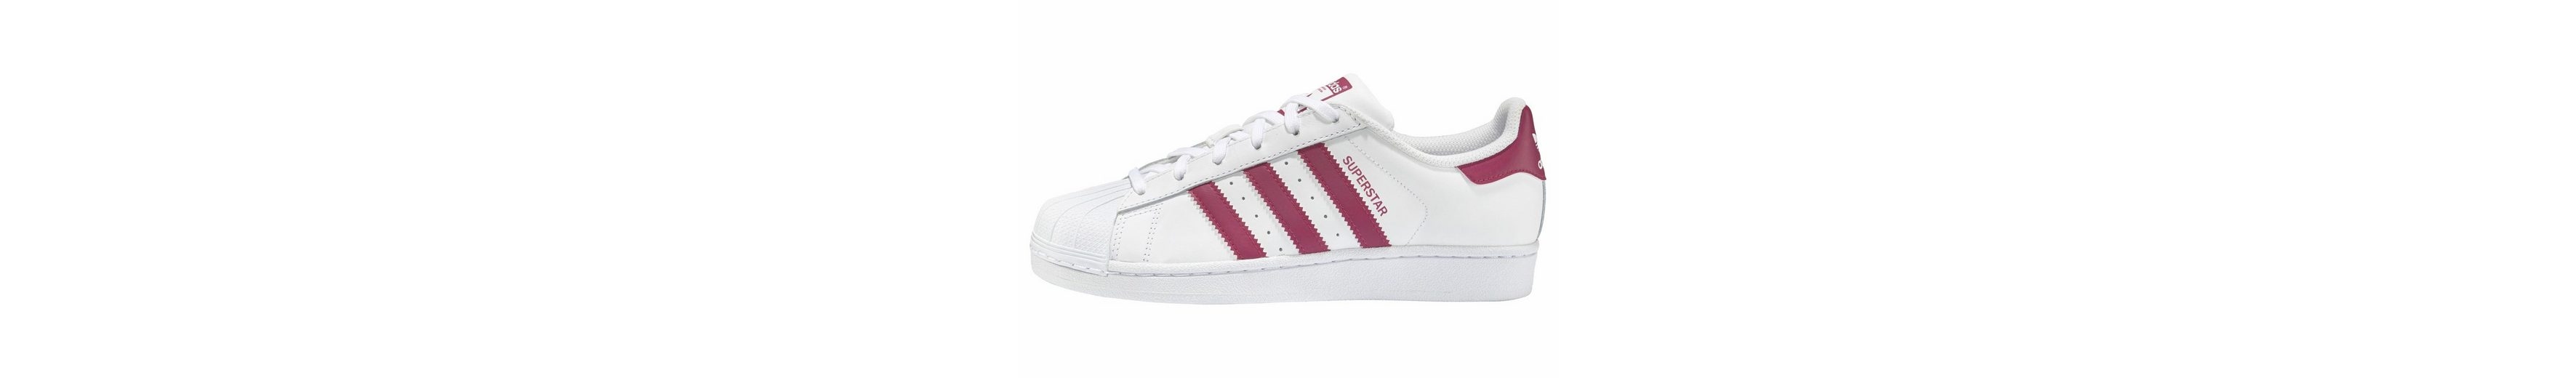 adidas Originals Superstar Sneaker, Damen